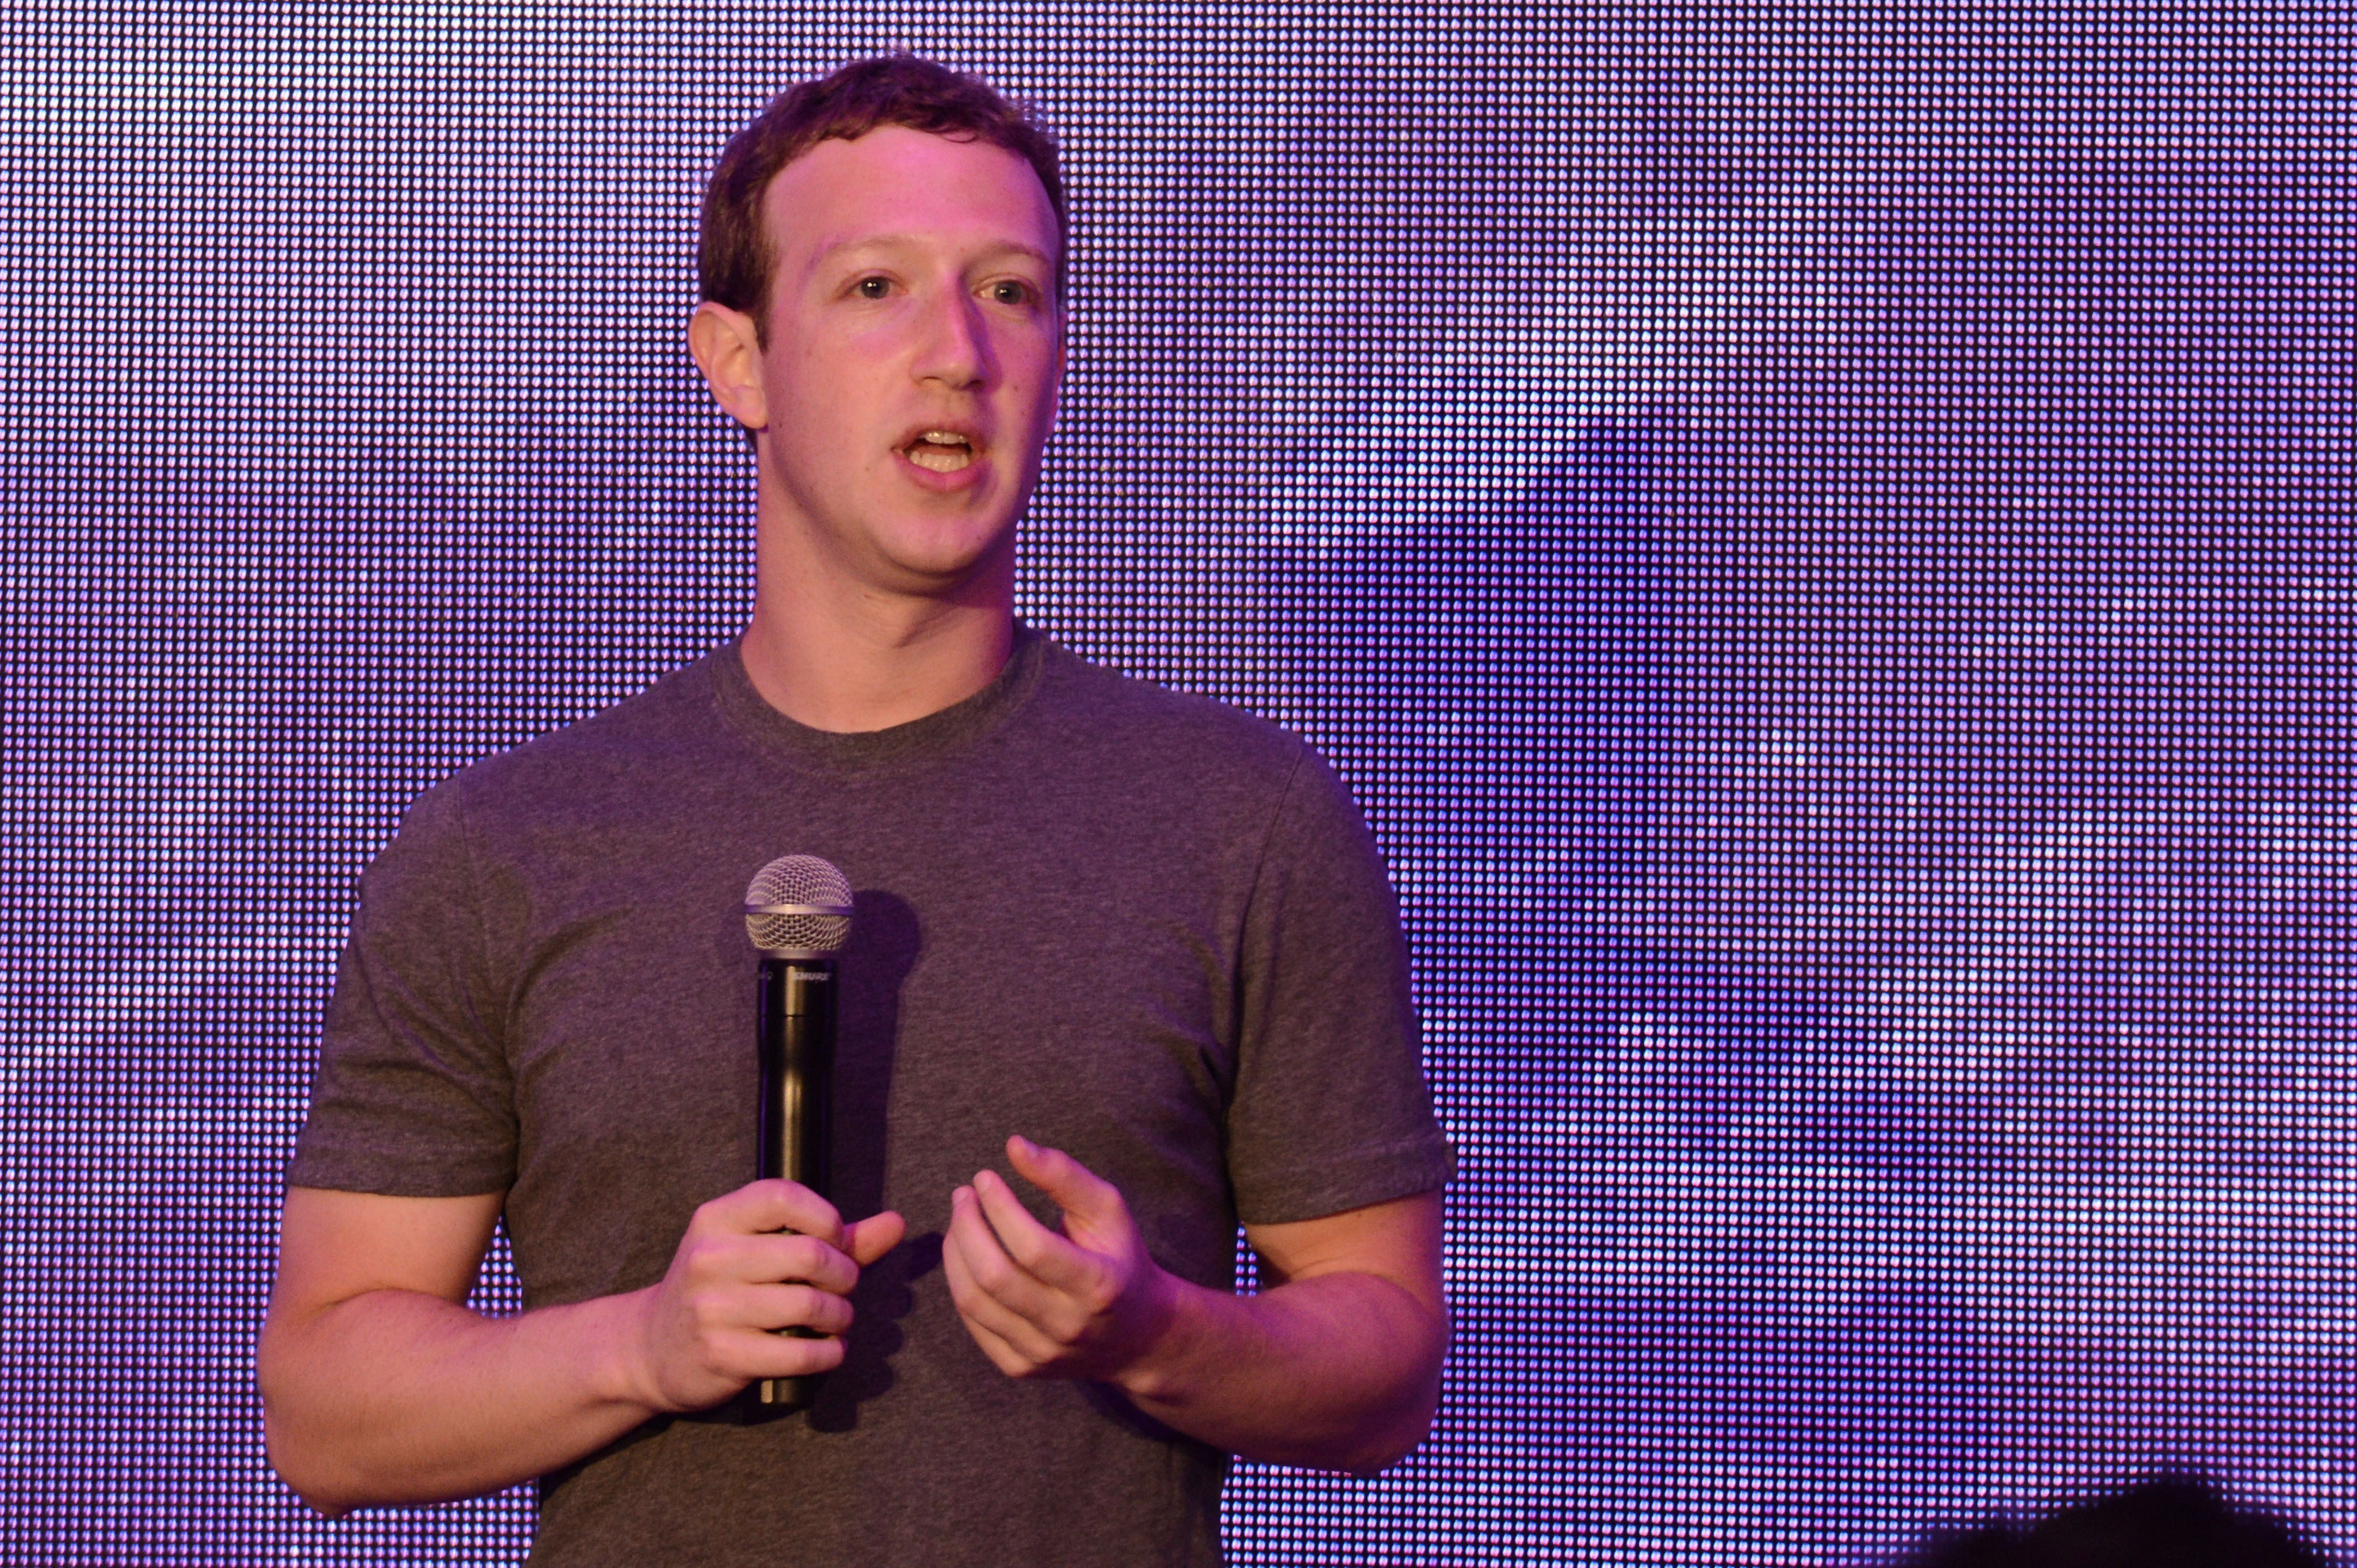 Facebook founder Mark Zuckerberg delivers a speech in Jakarta on October 13, 2014.